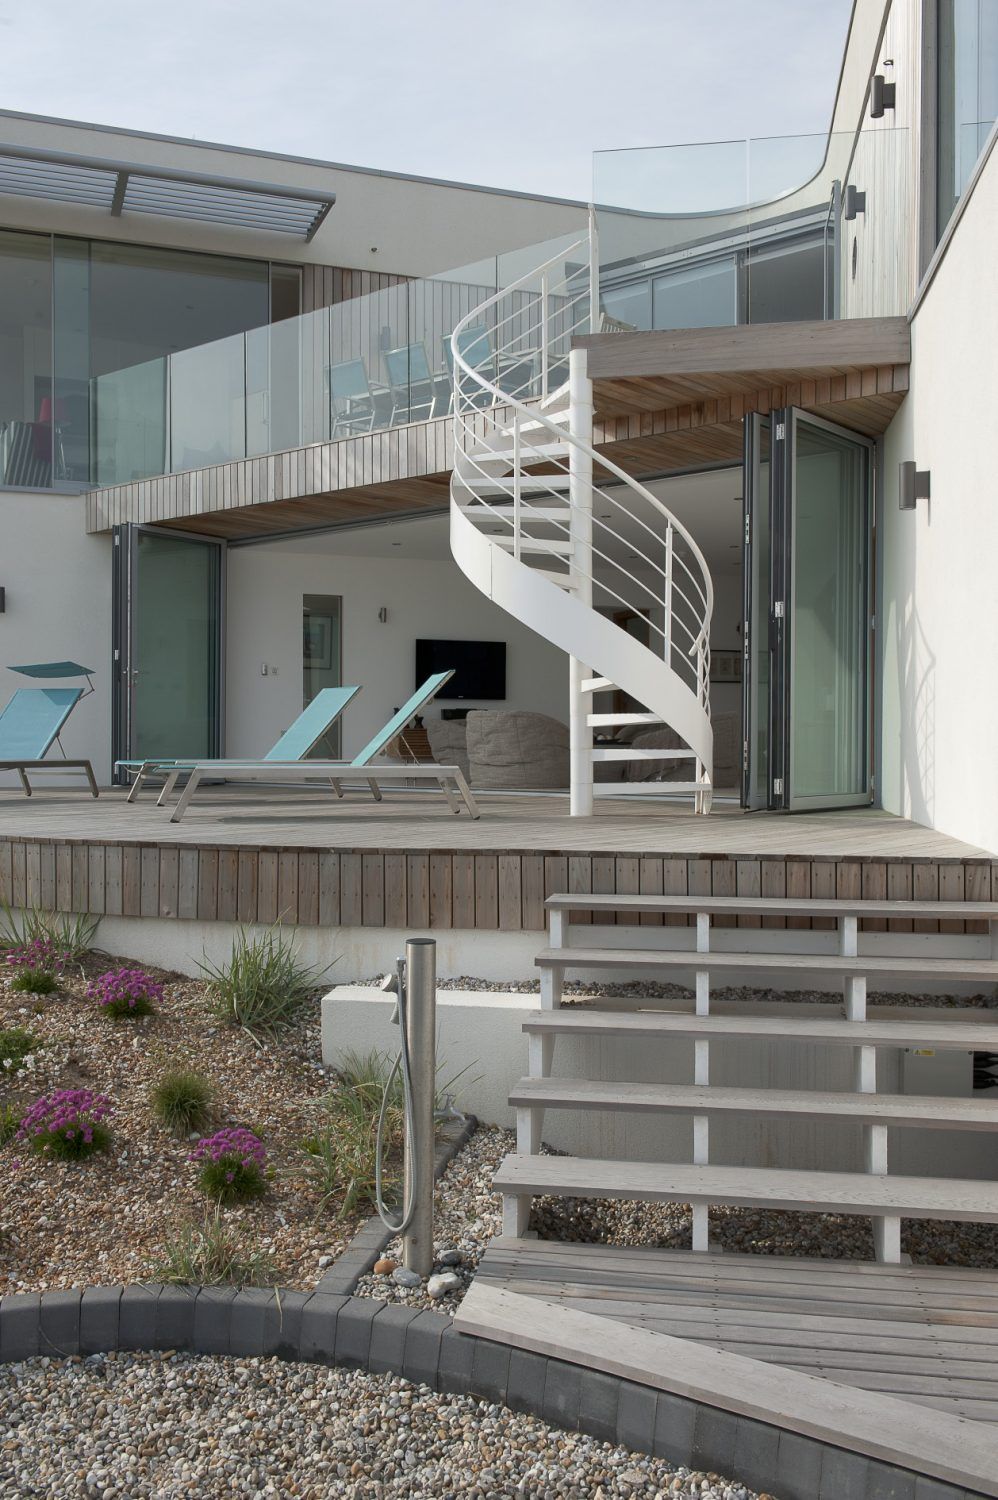 The spiral staircase is echoed outdoors